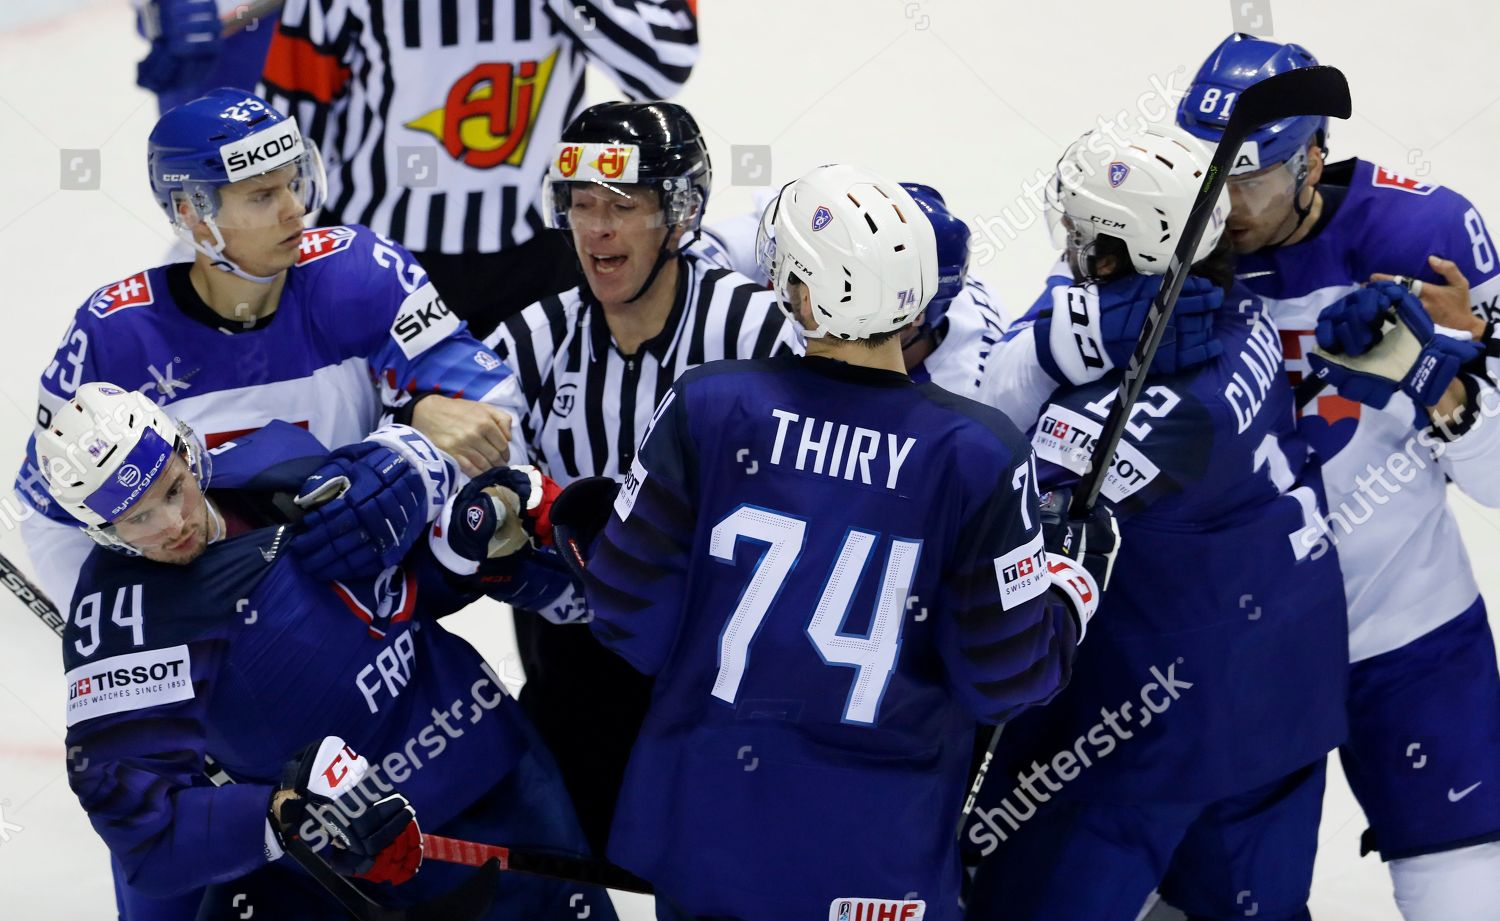 Referee Tries Break Off Fight Between Players Editorial Stock Photo